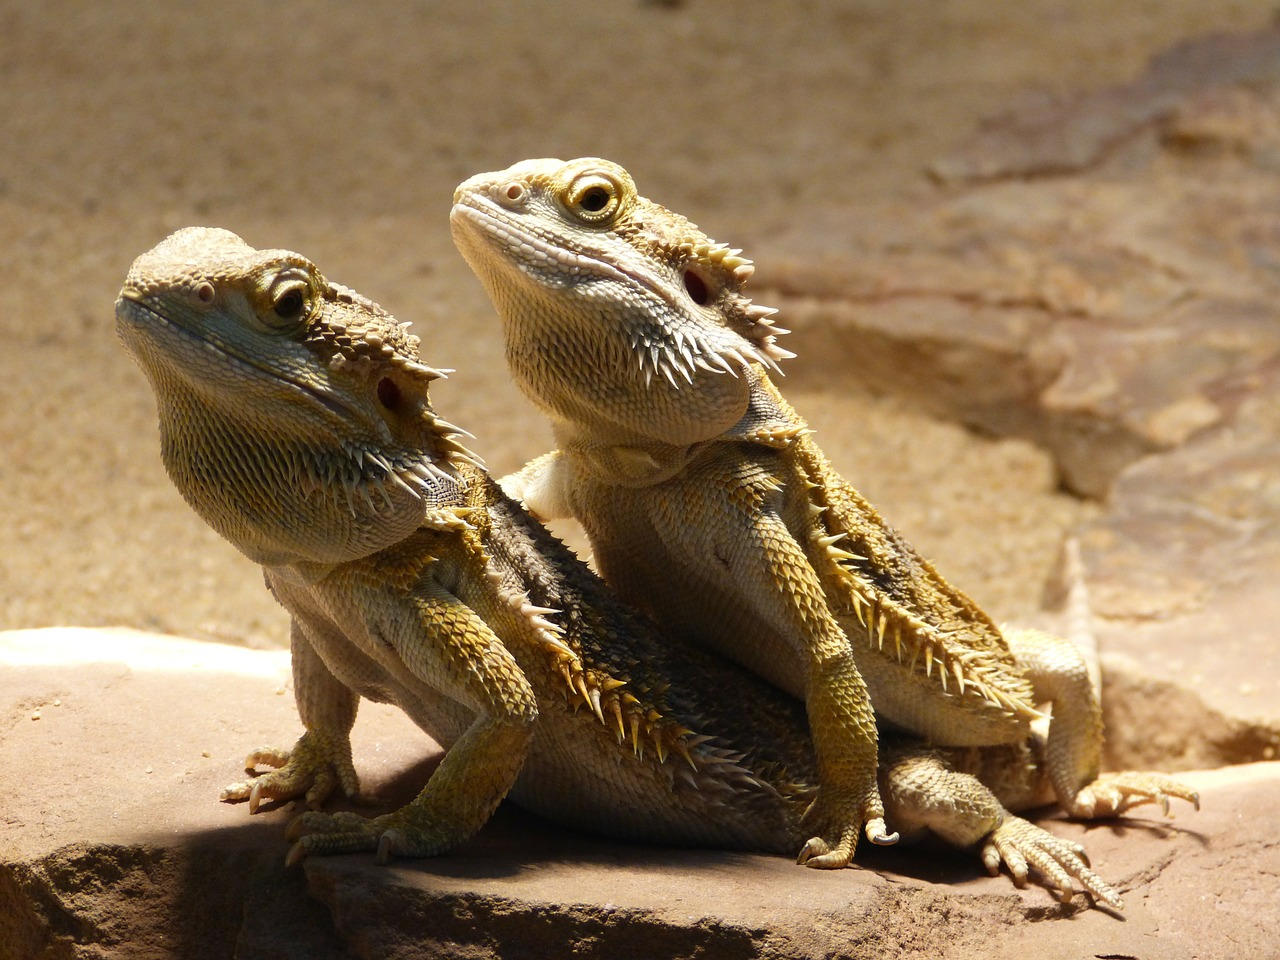 a photo of two bearded dragons being social.